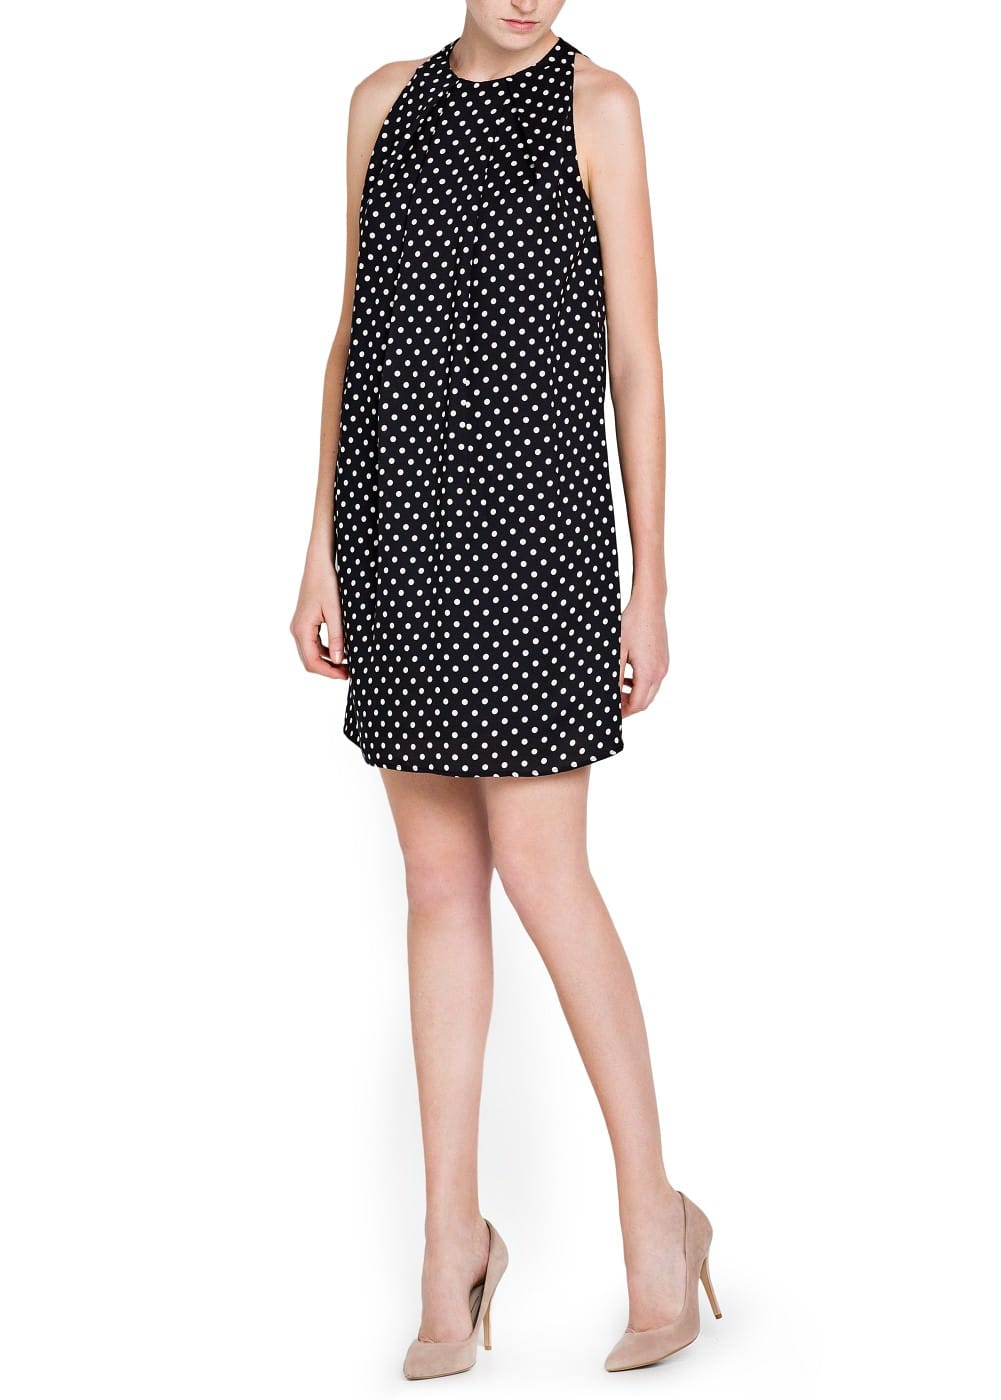 Flowy polka-dot dress